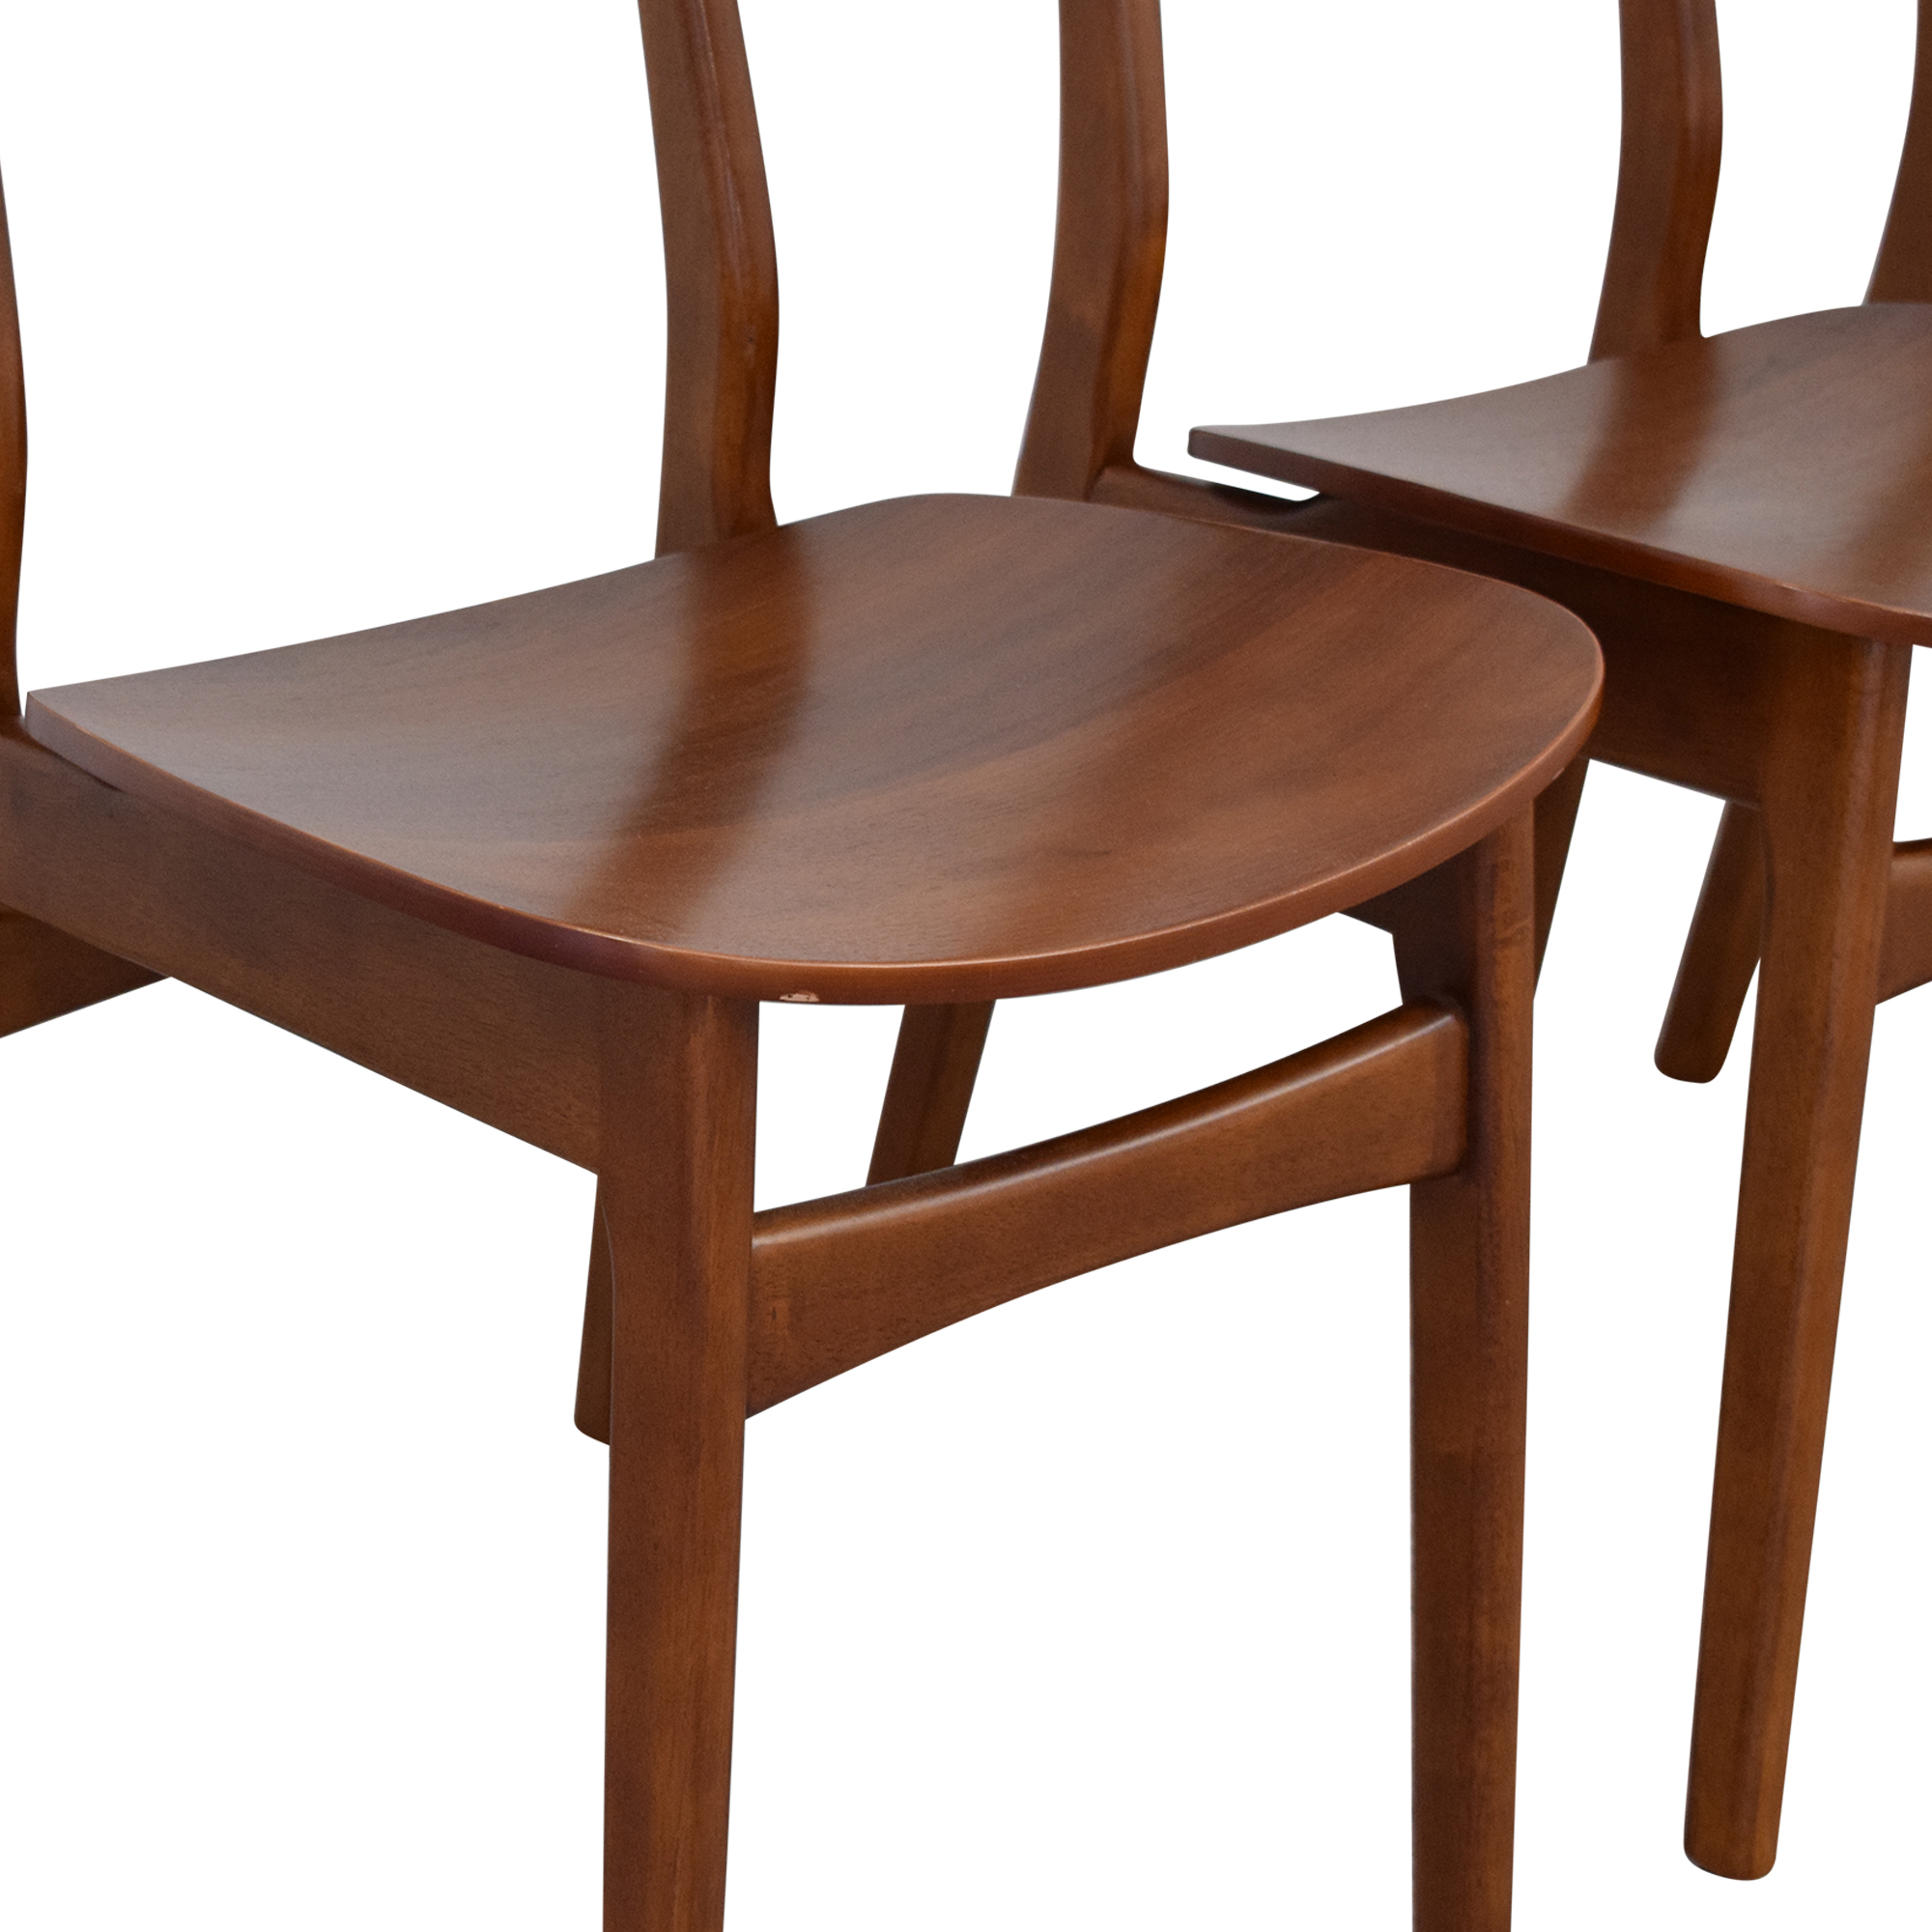 West Elm West Elm Classic Cafe Dining Chairs Dining Chairs